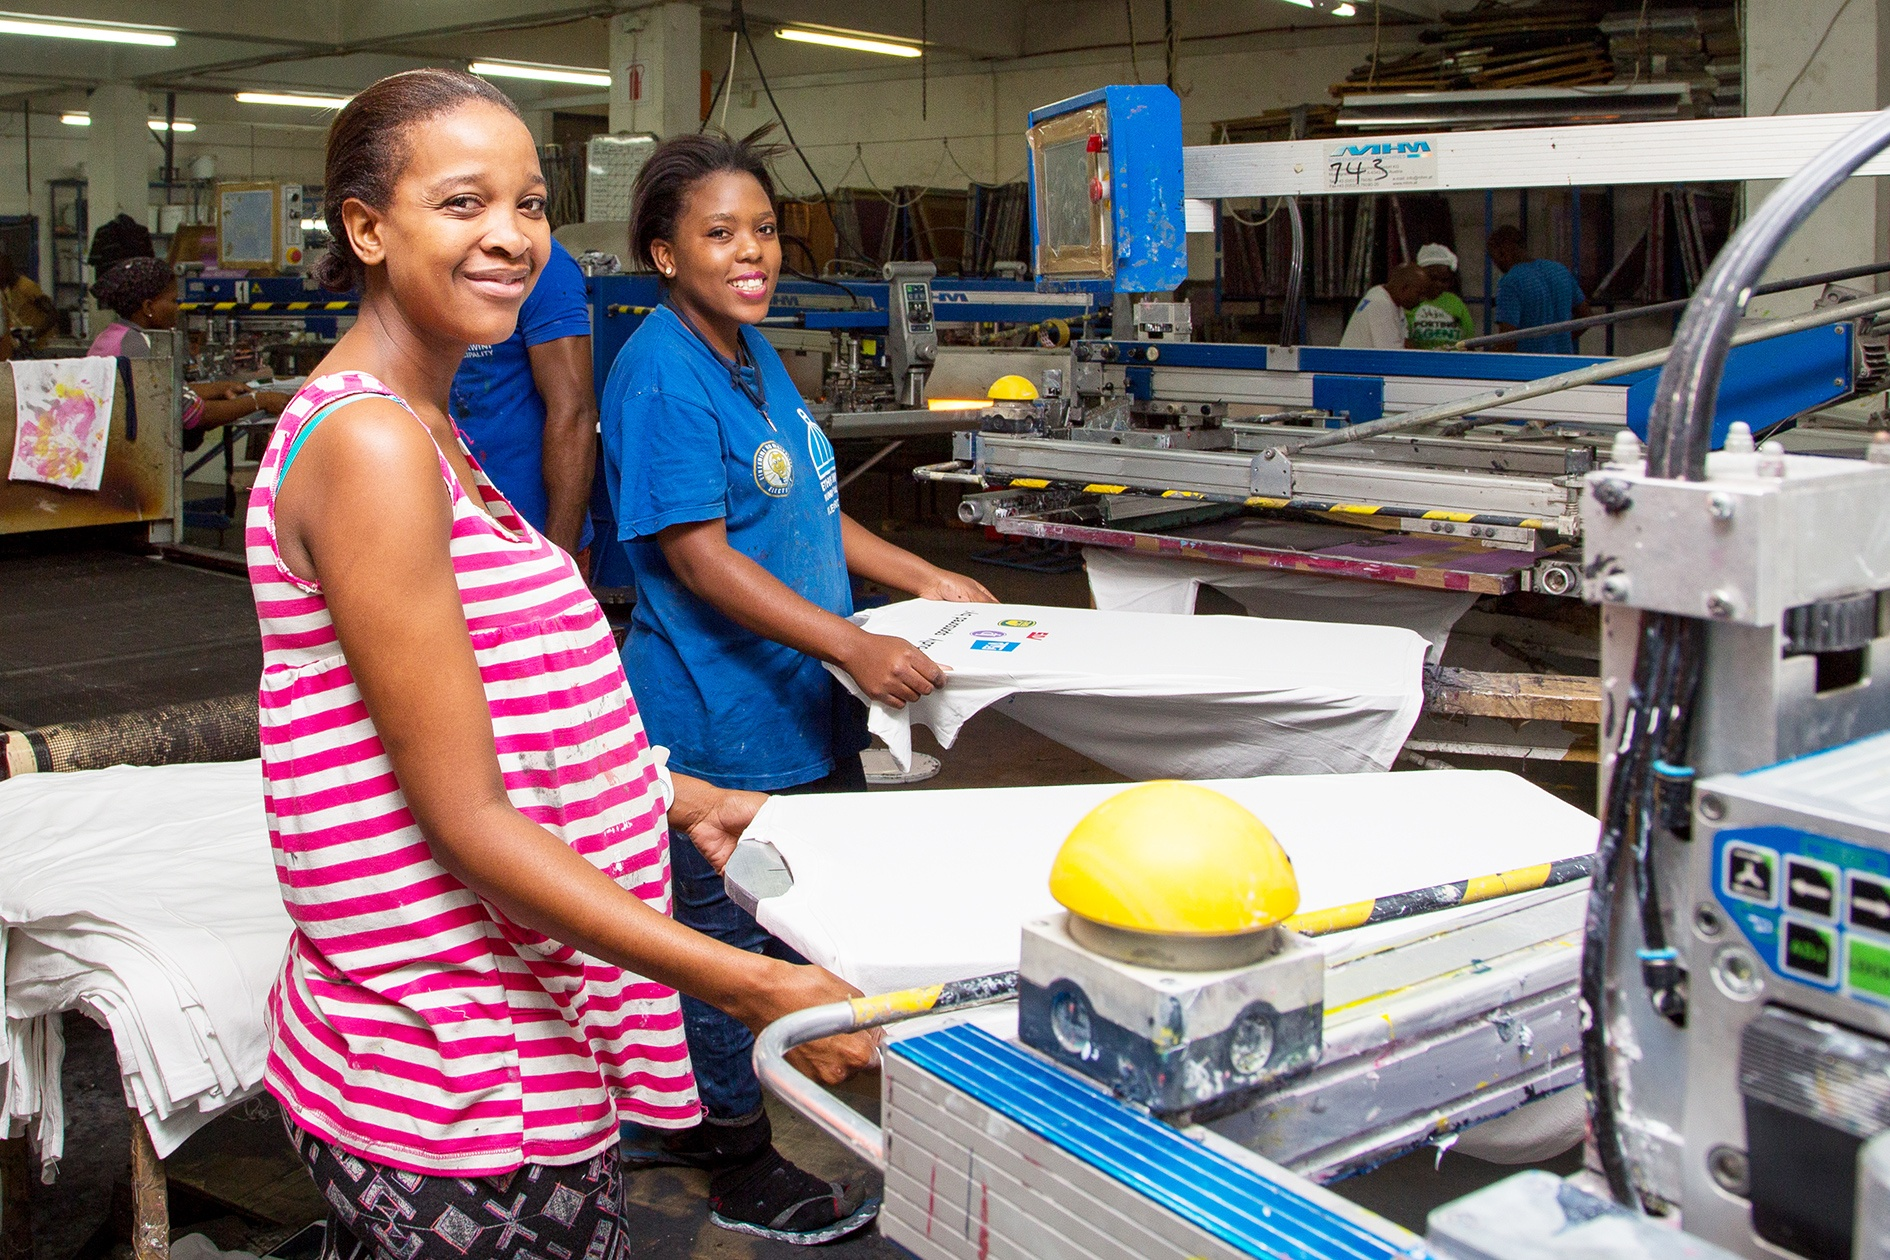 Two African ladies at work in a factory